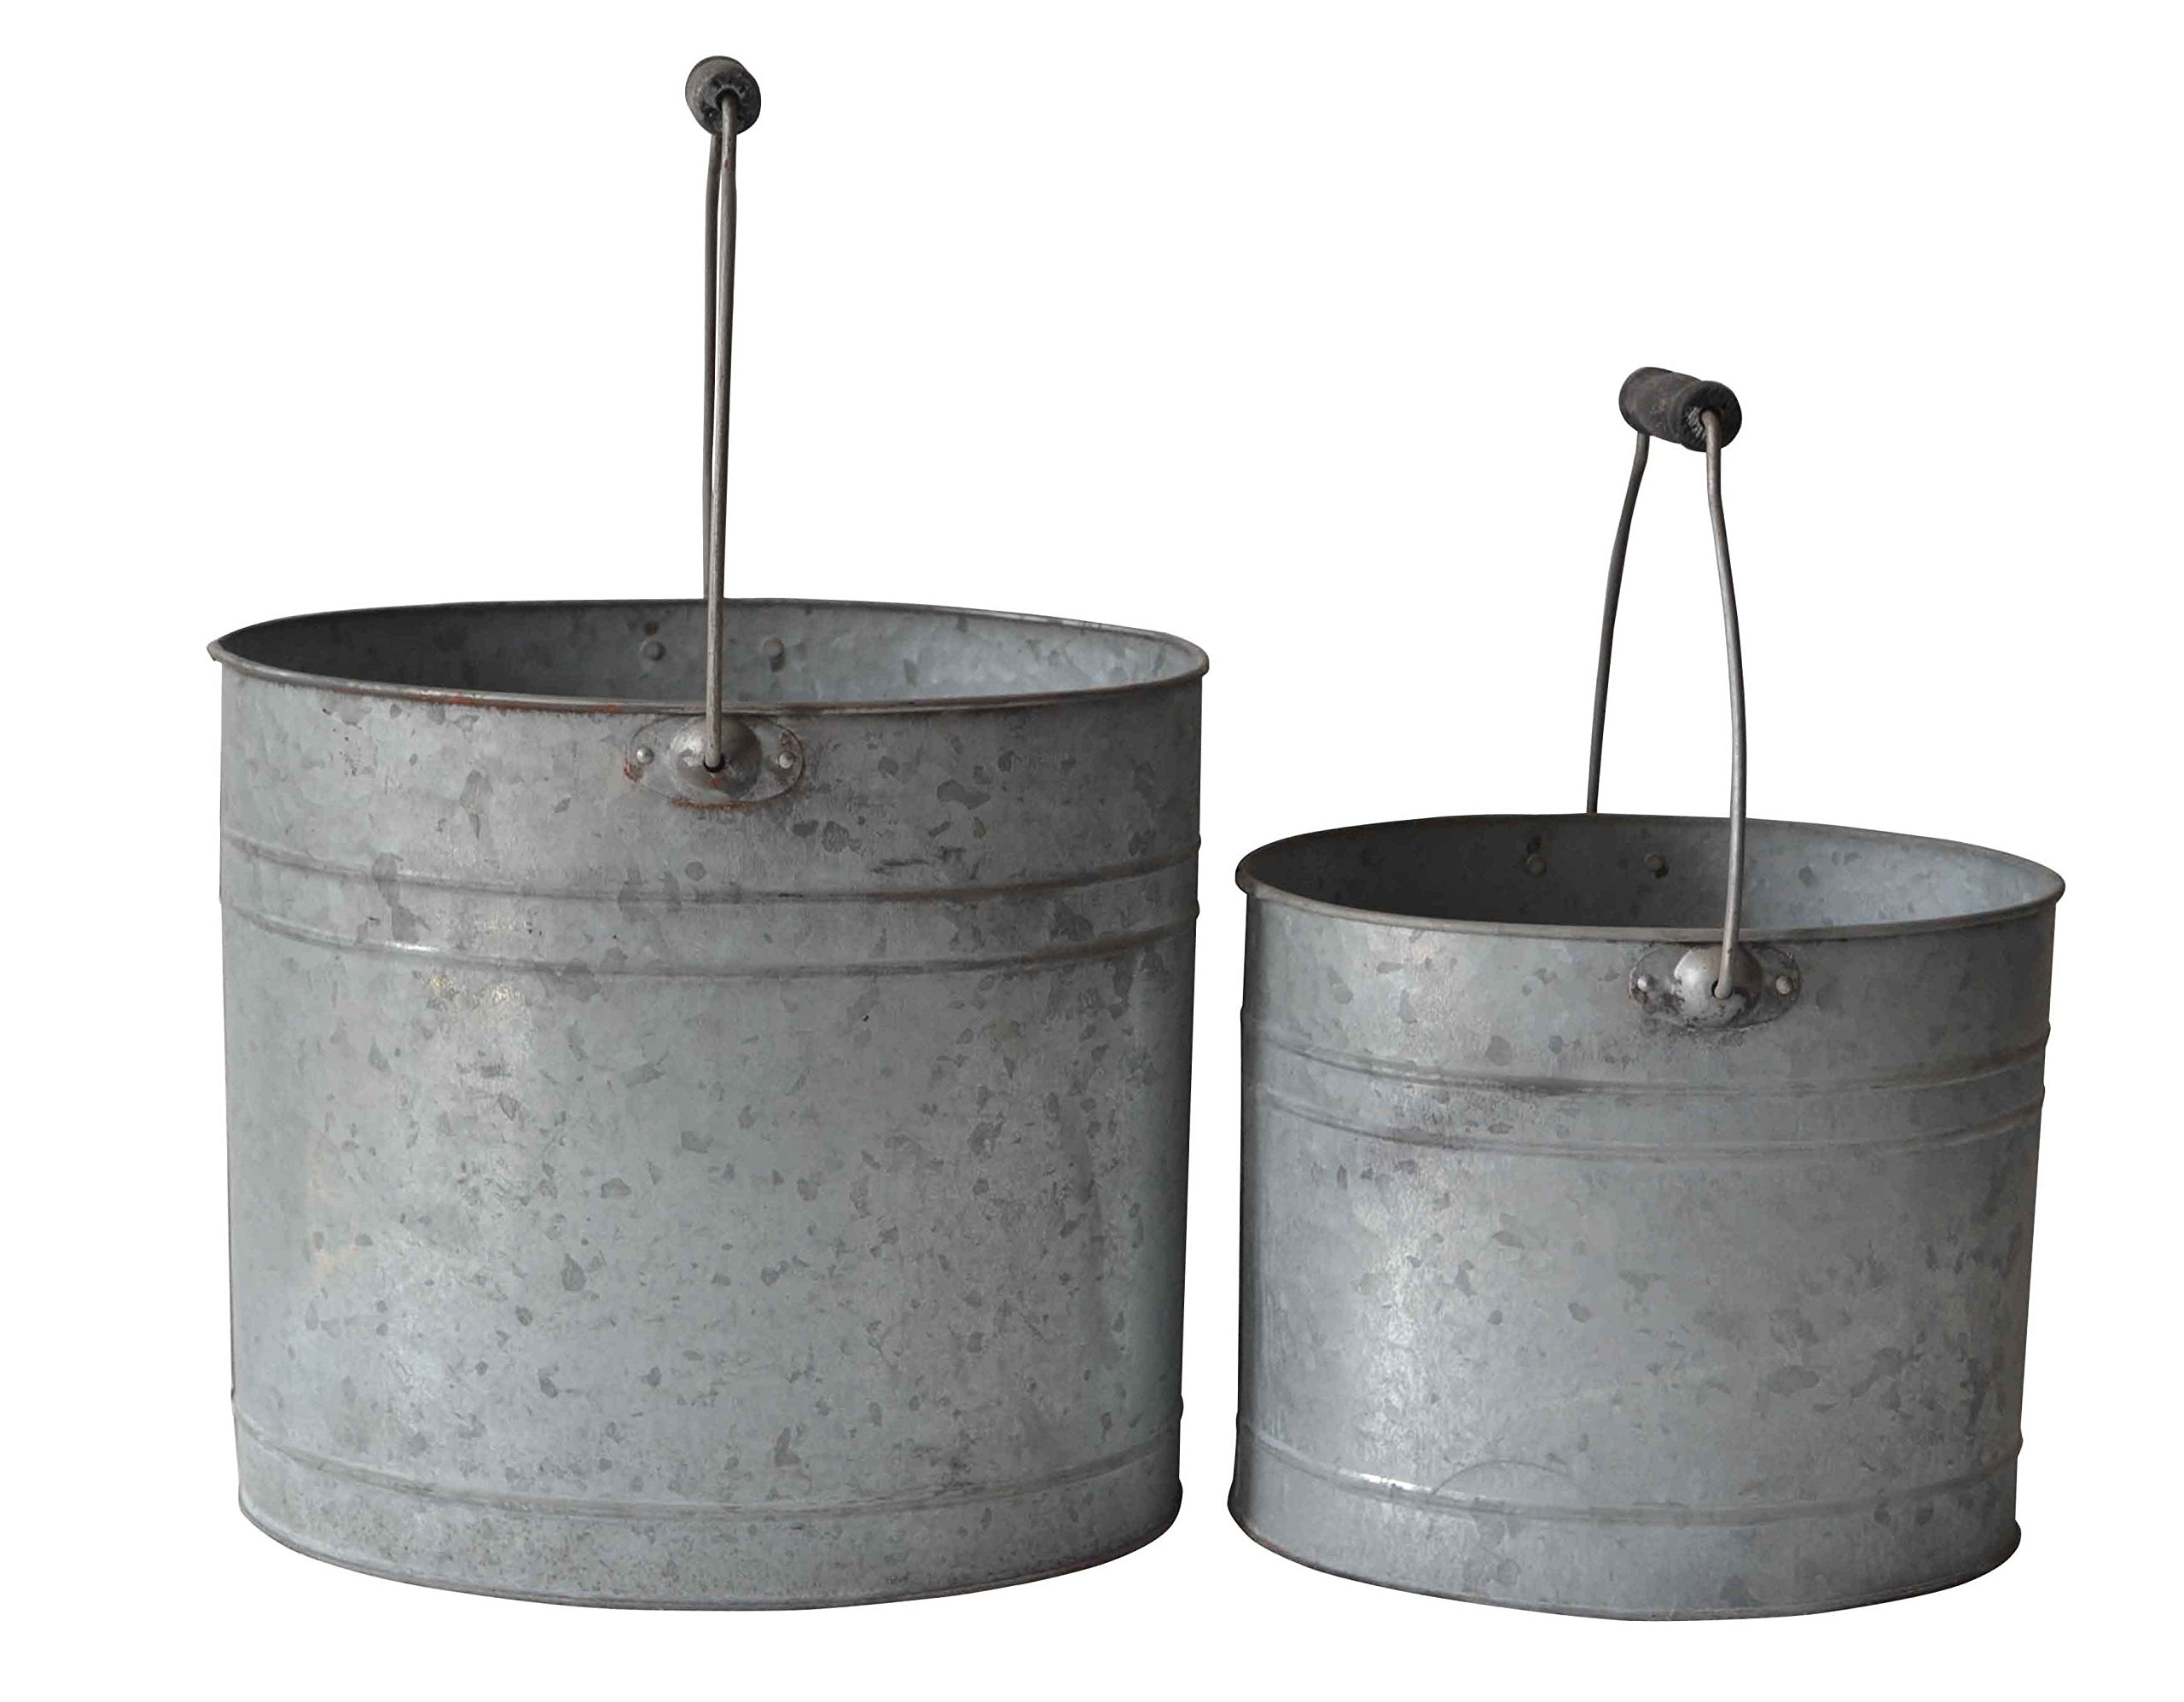 Cheung's FP-4249-2 Oval Metal Bucket With Wood Grip Handle, Set Of 2 by Cheung's (Image #1)